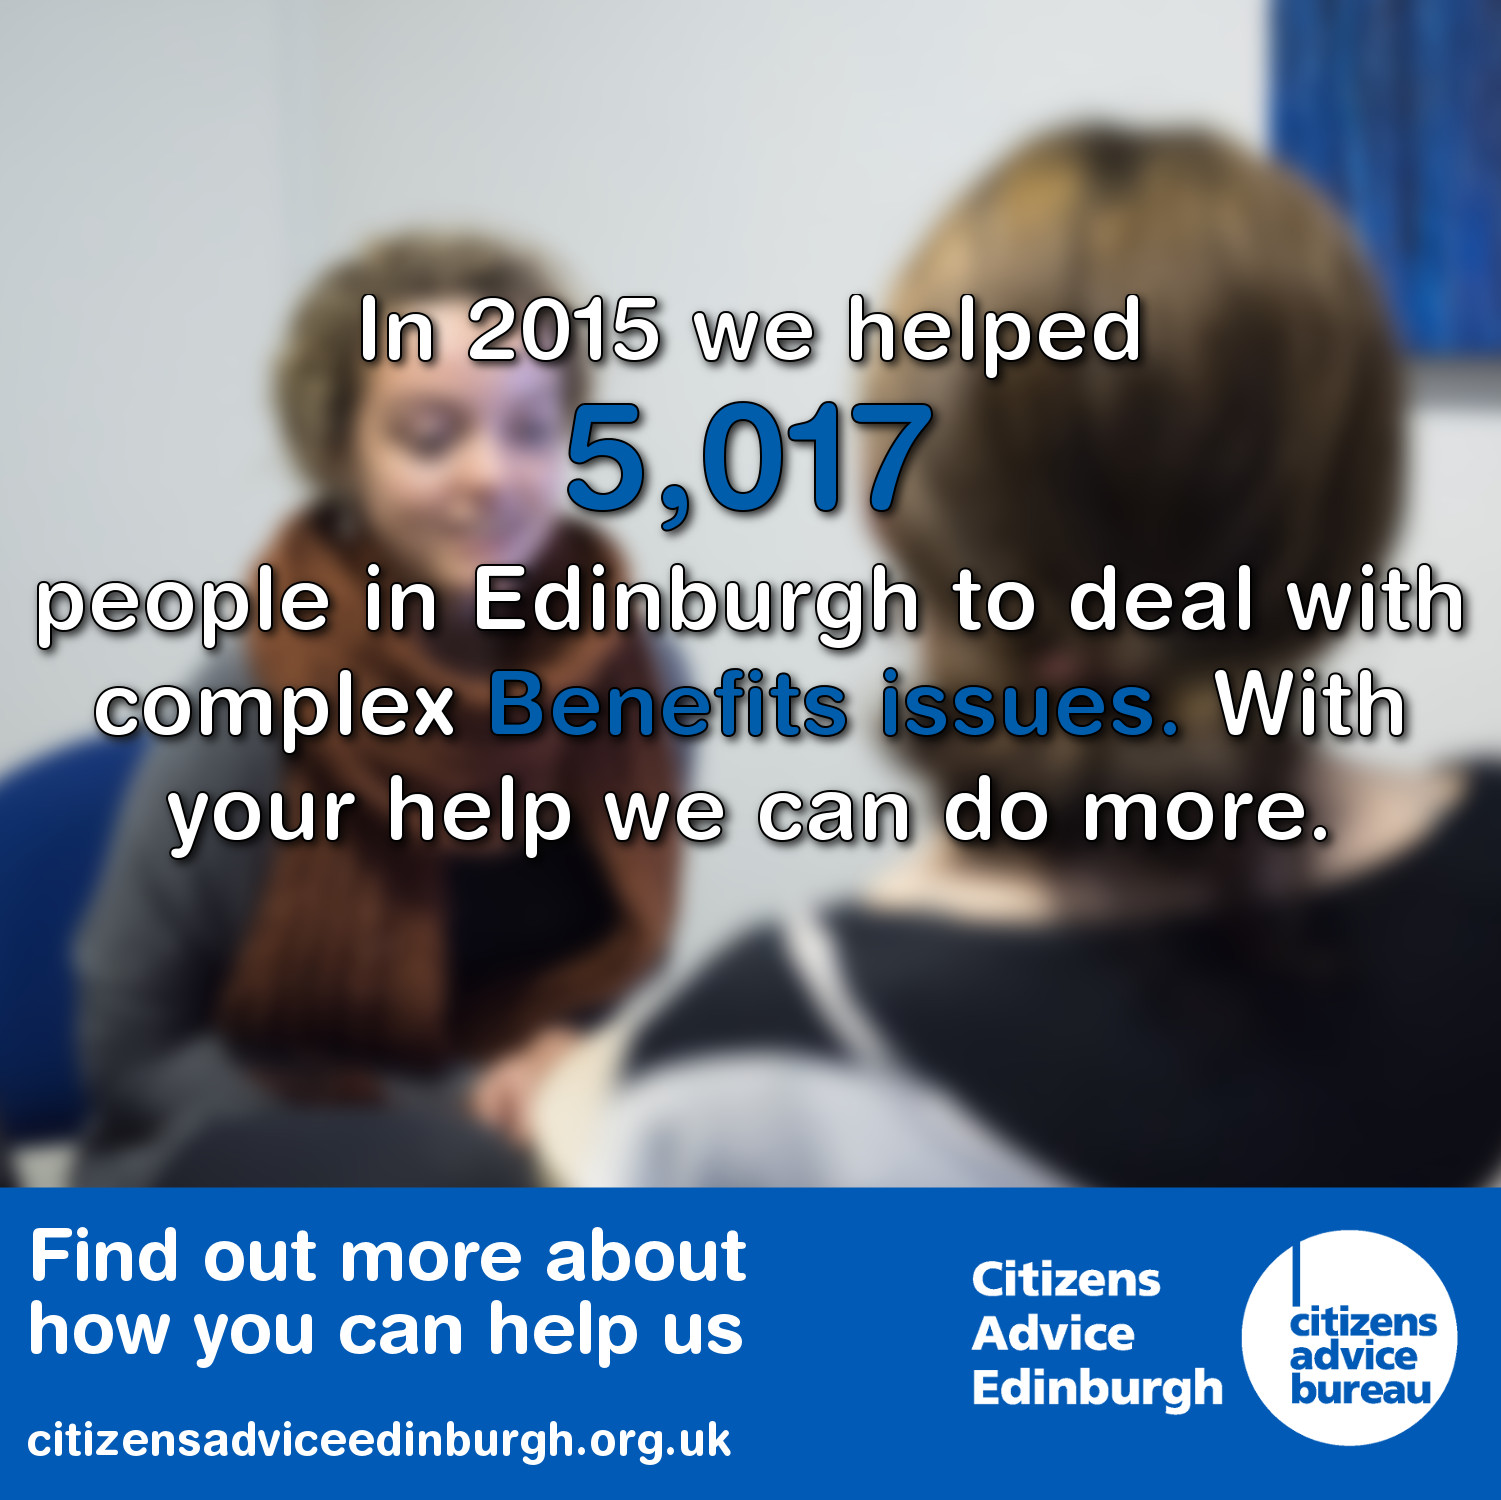 Last year Citizens Advice Edinburgh helped 5,017 people deal with benefits issues in Edinburgh.